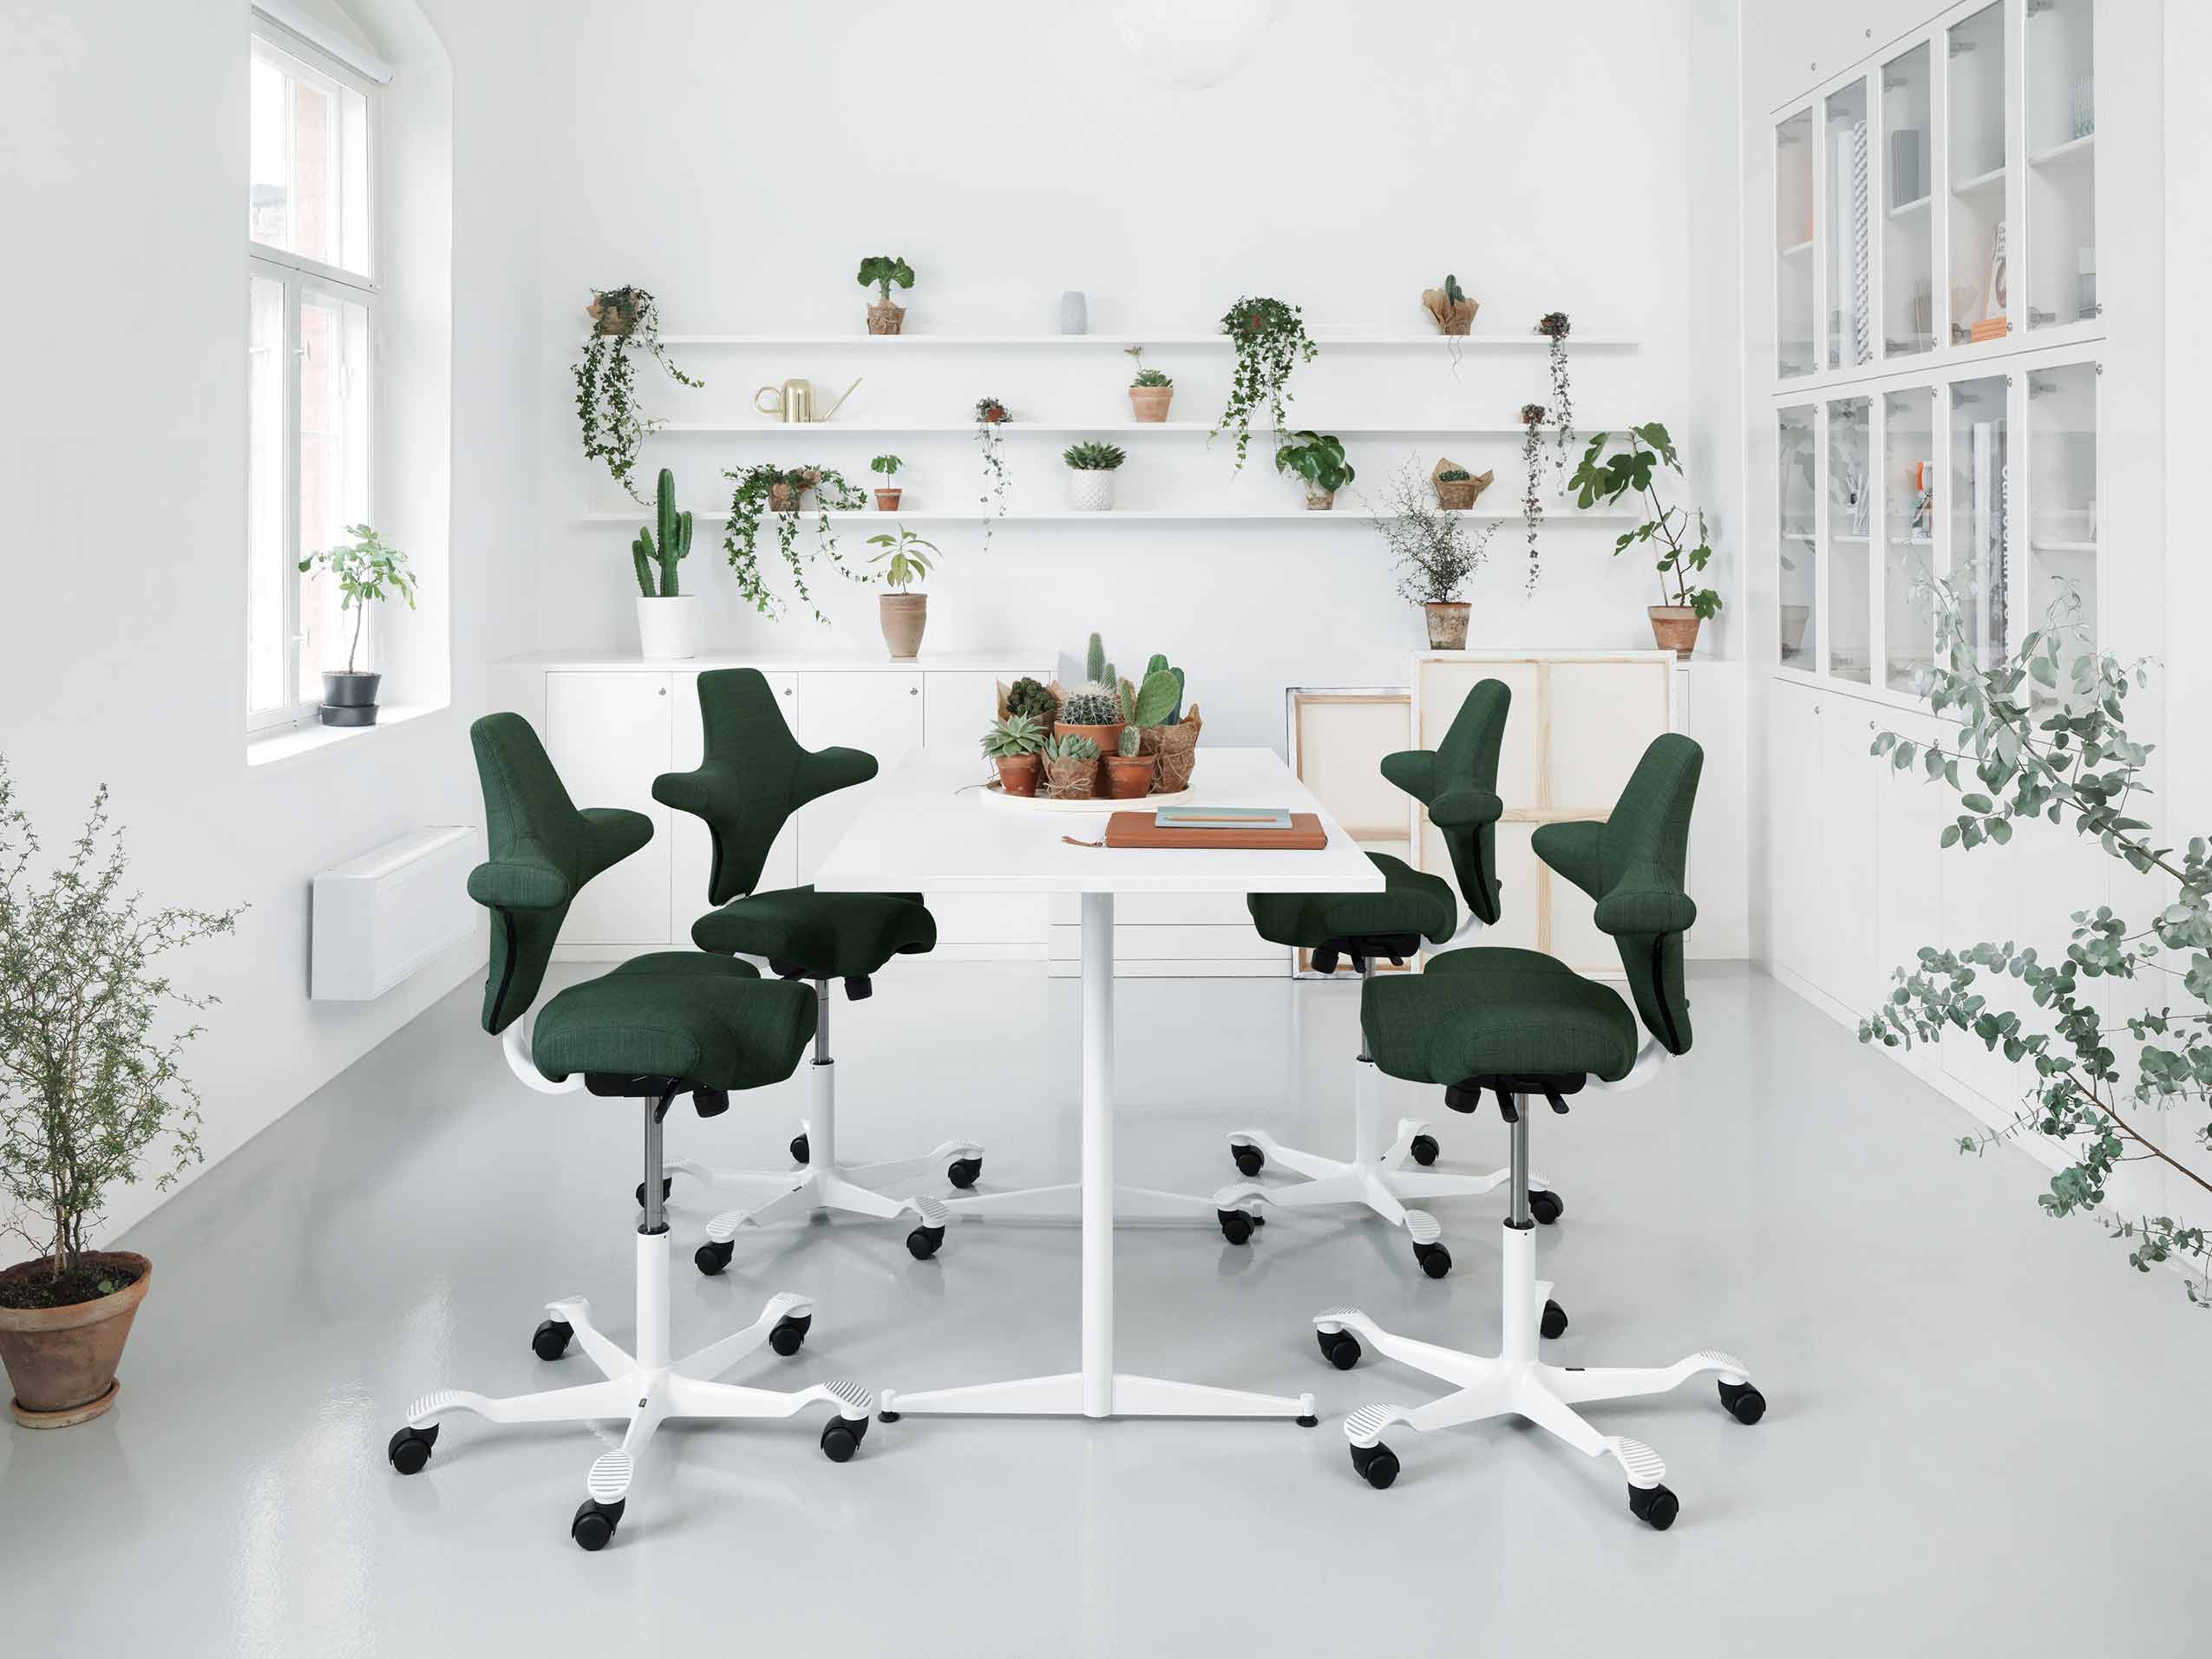 HÅG Capisco in Green  - designed by Peter Opsvik for Flokk